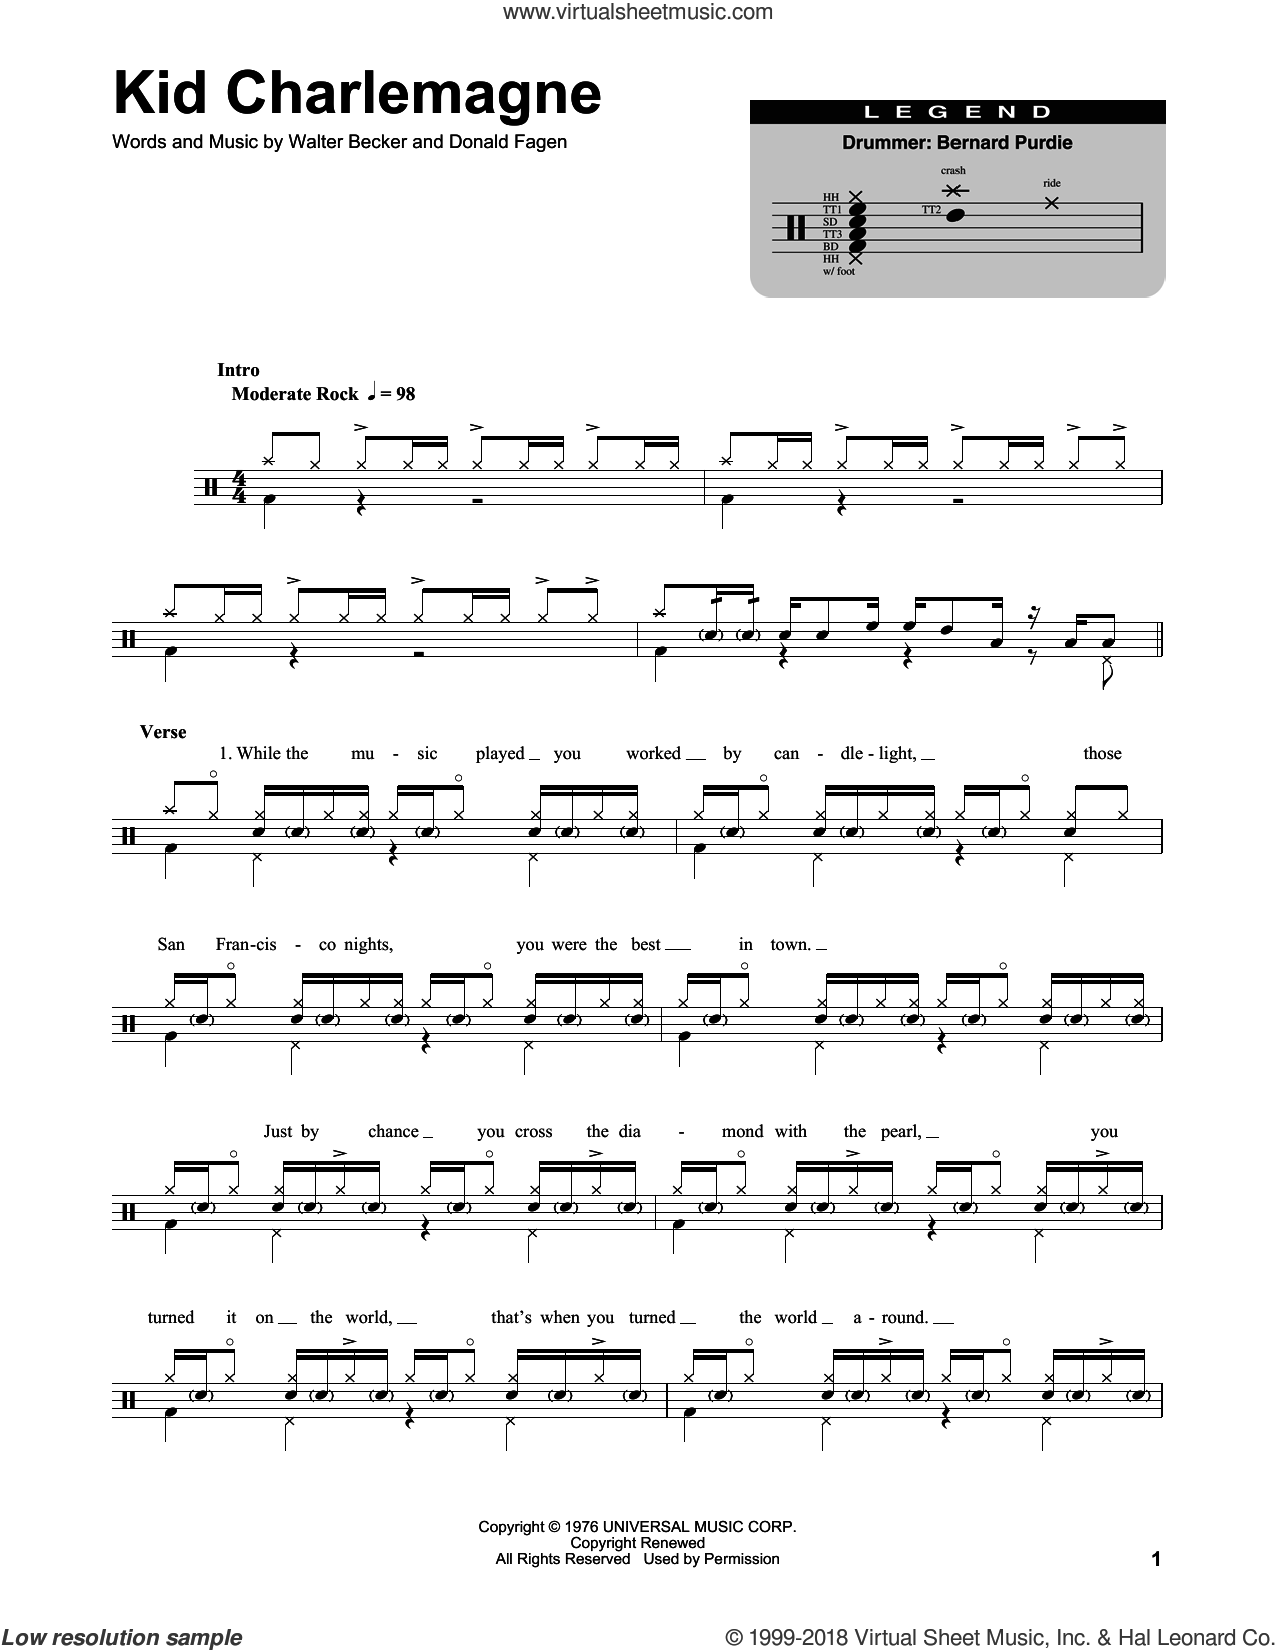 Kid Charlemagne sheet music for drums by Steely Dan, Donald Fagen and Walter Becker, intermediate skill level